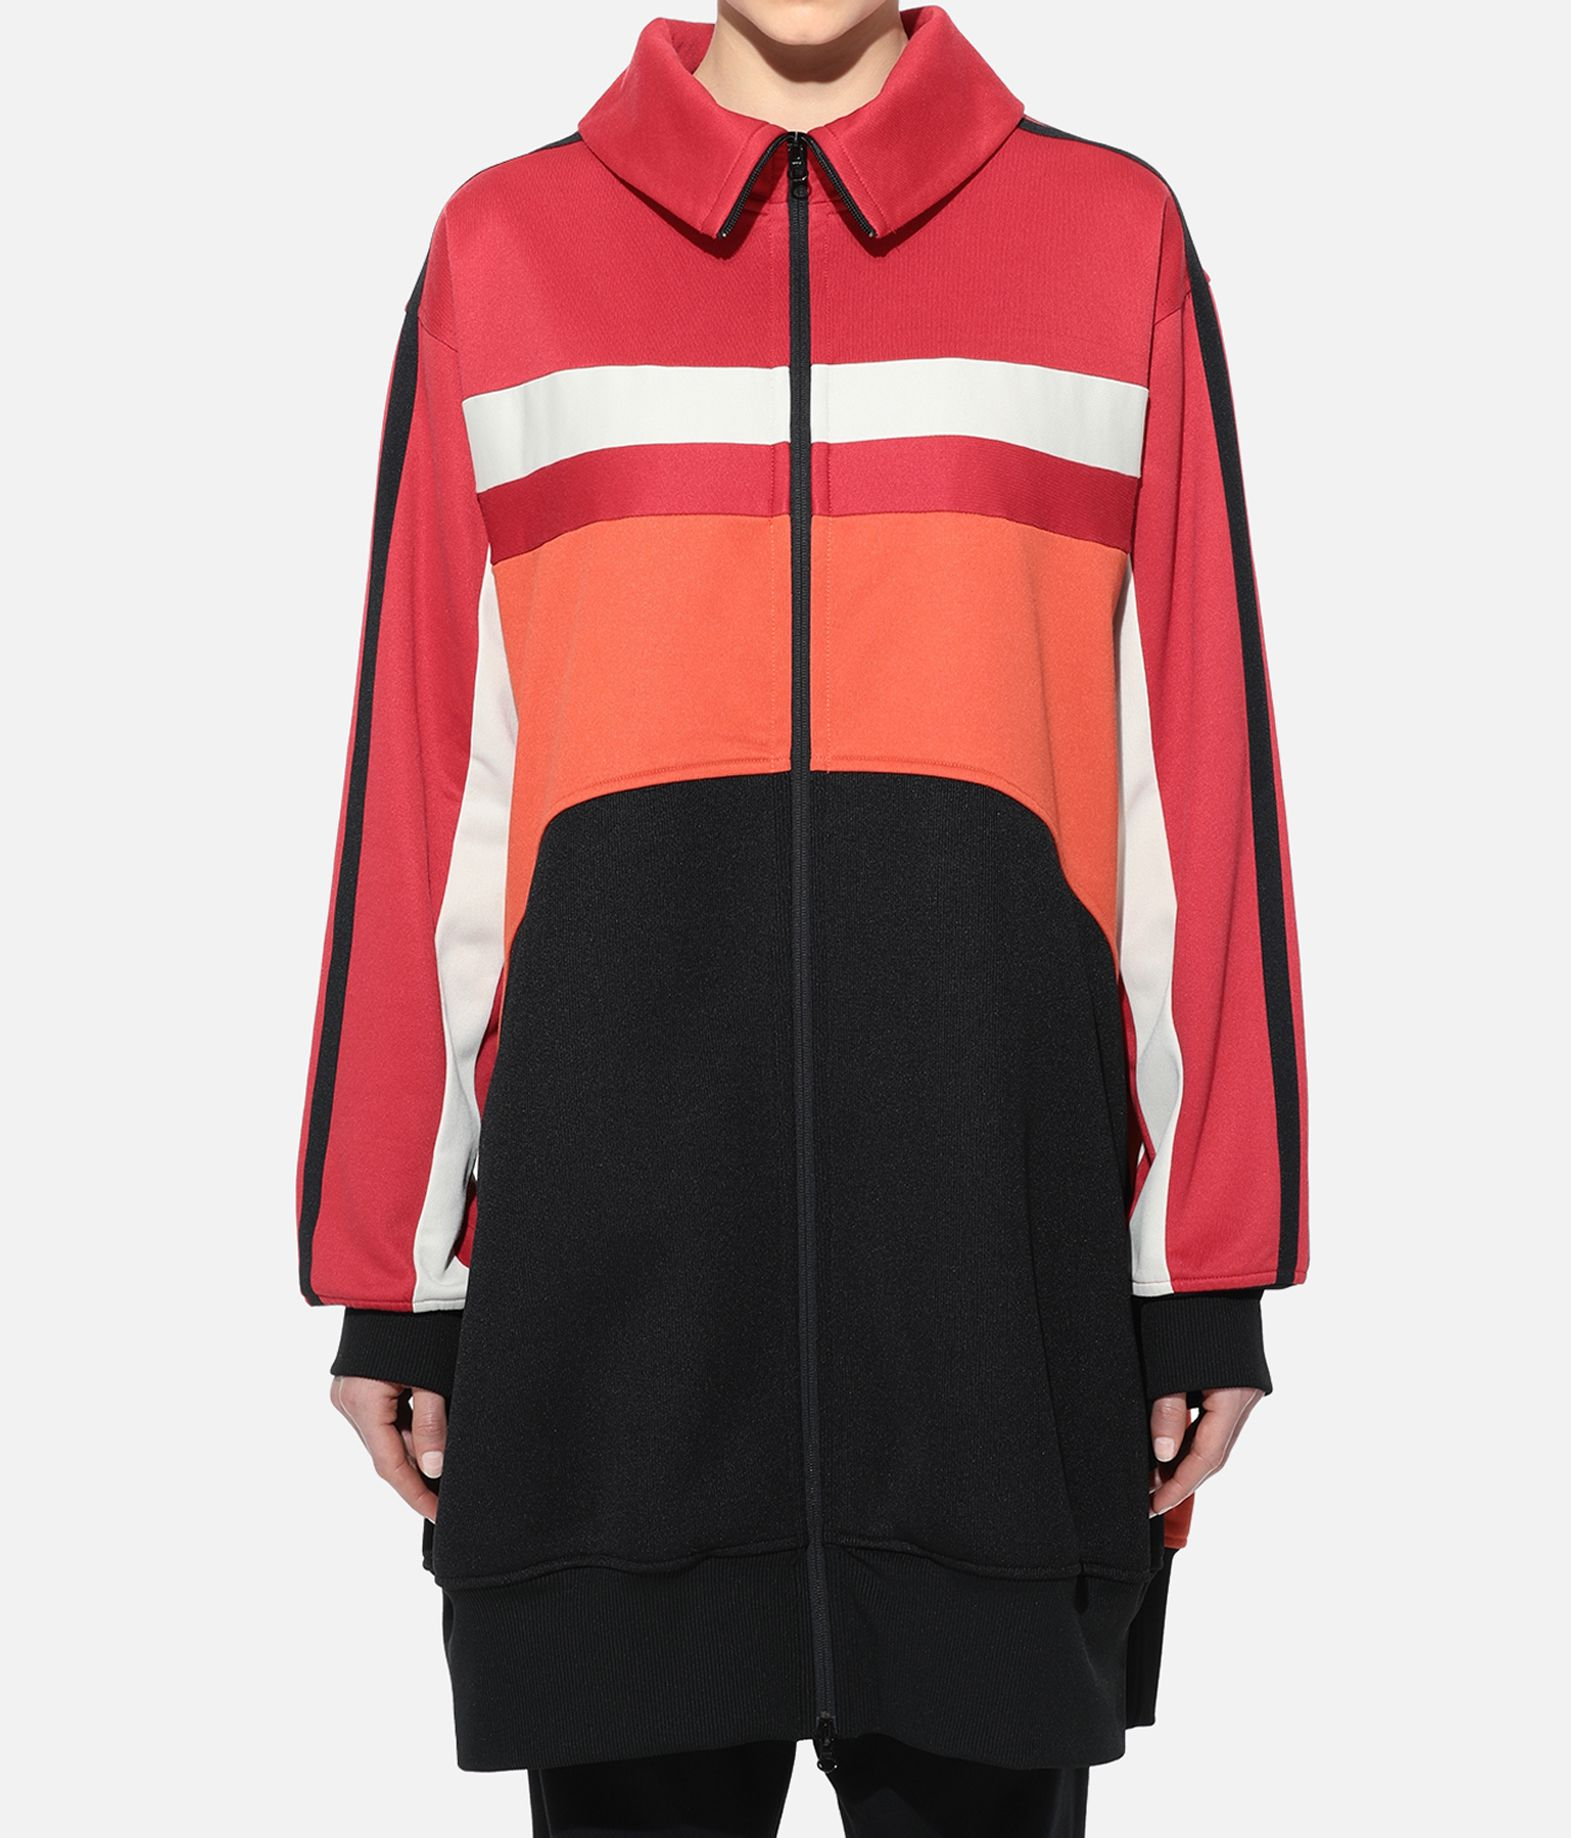 Y-3 Y-3 OVERSIZED GRAPHIC TRACK TOP Track top Woman r